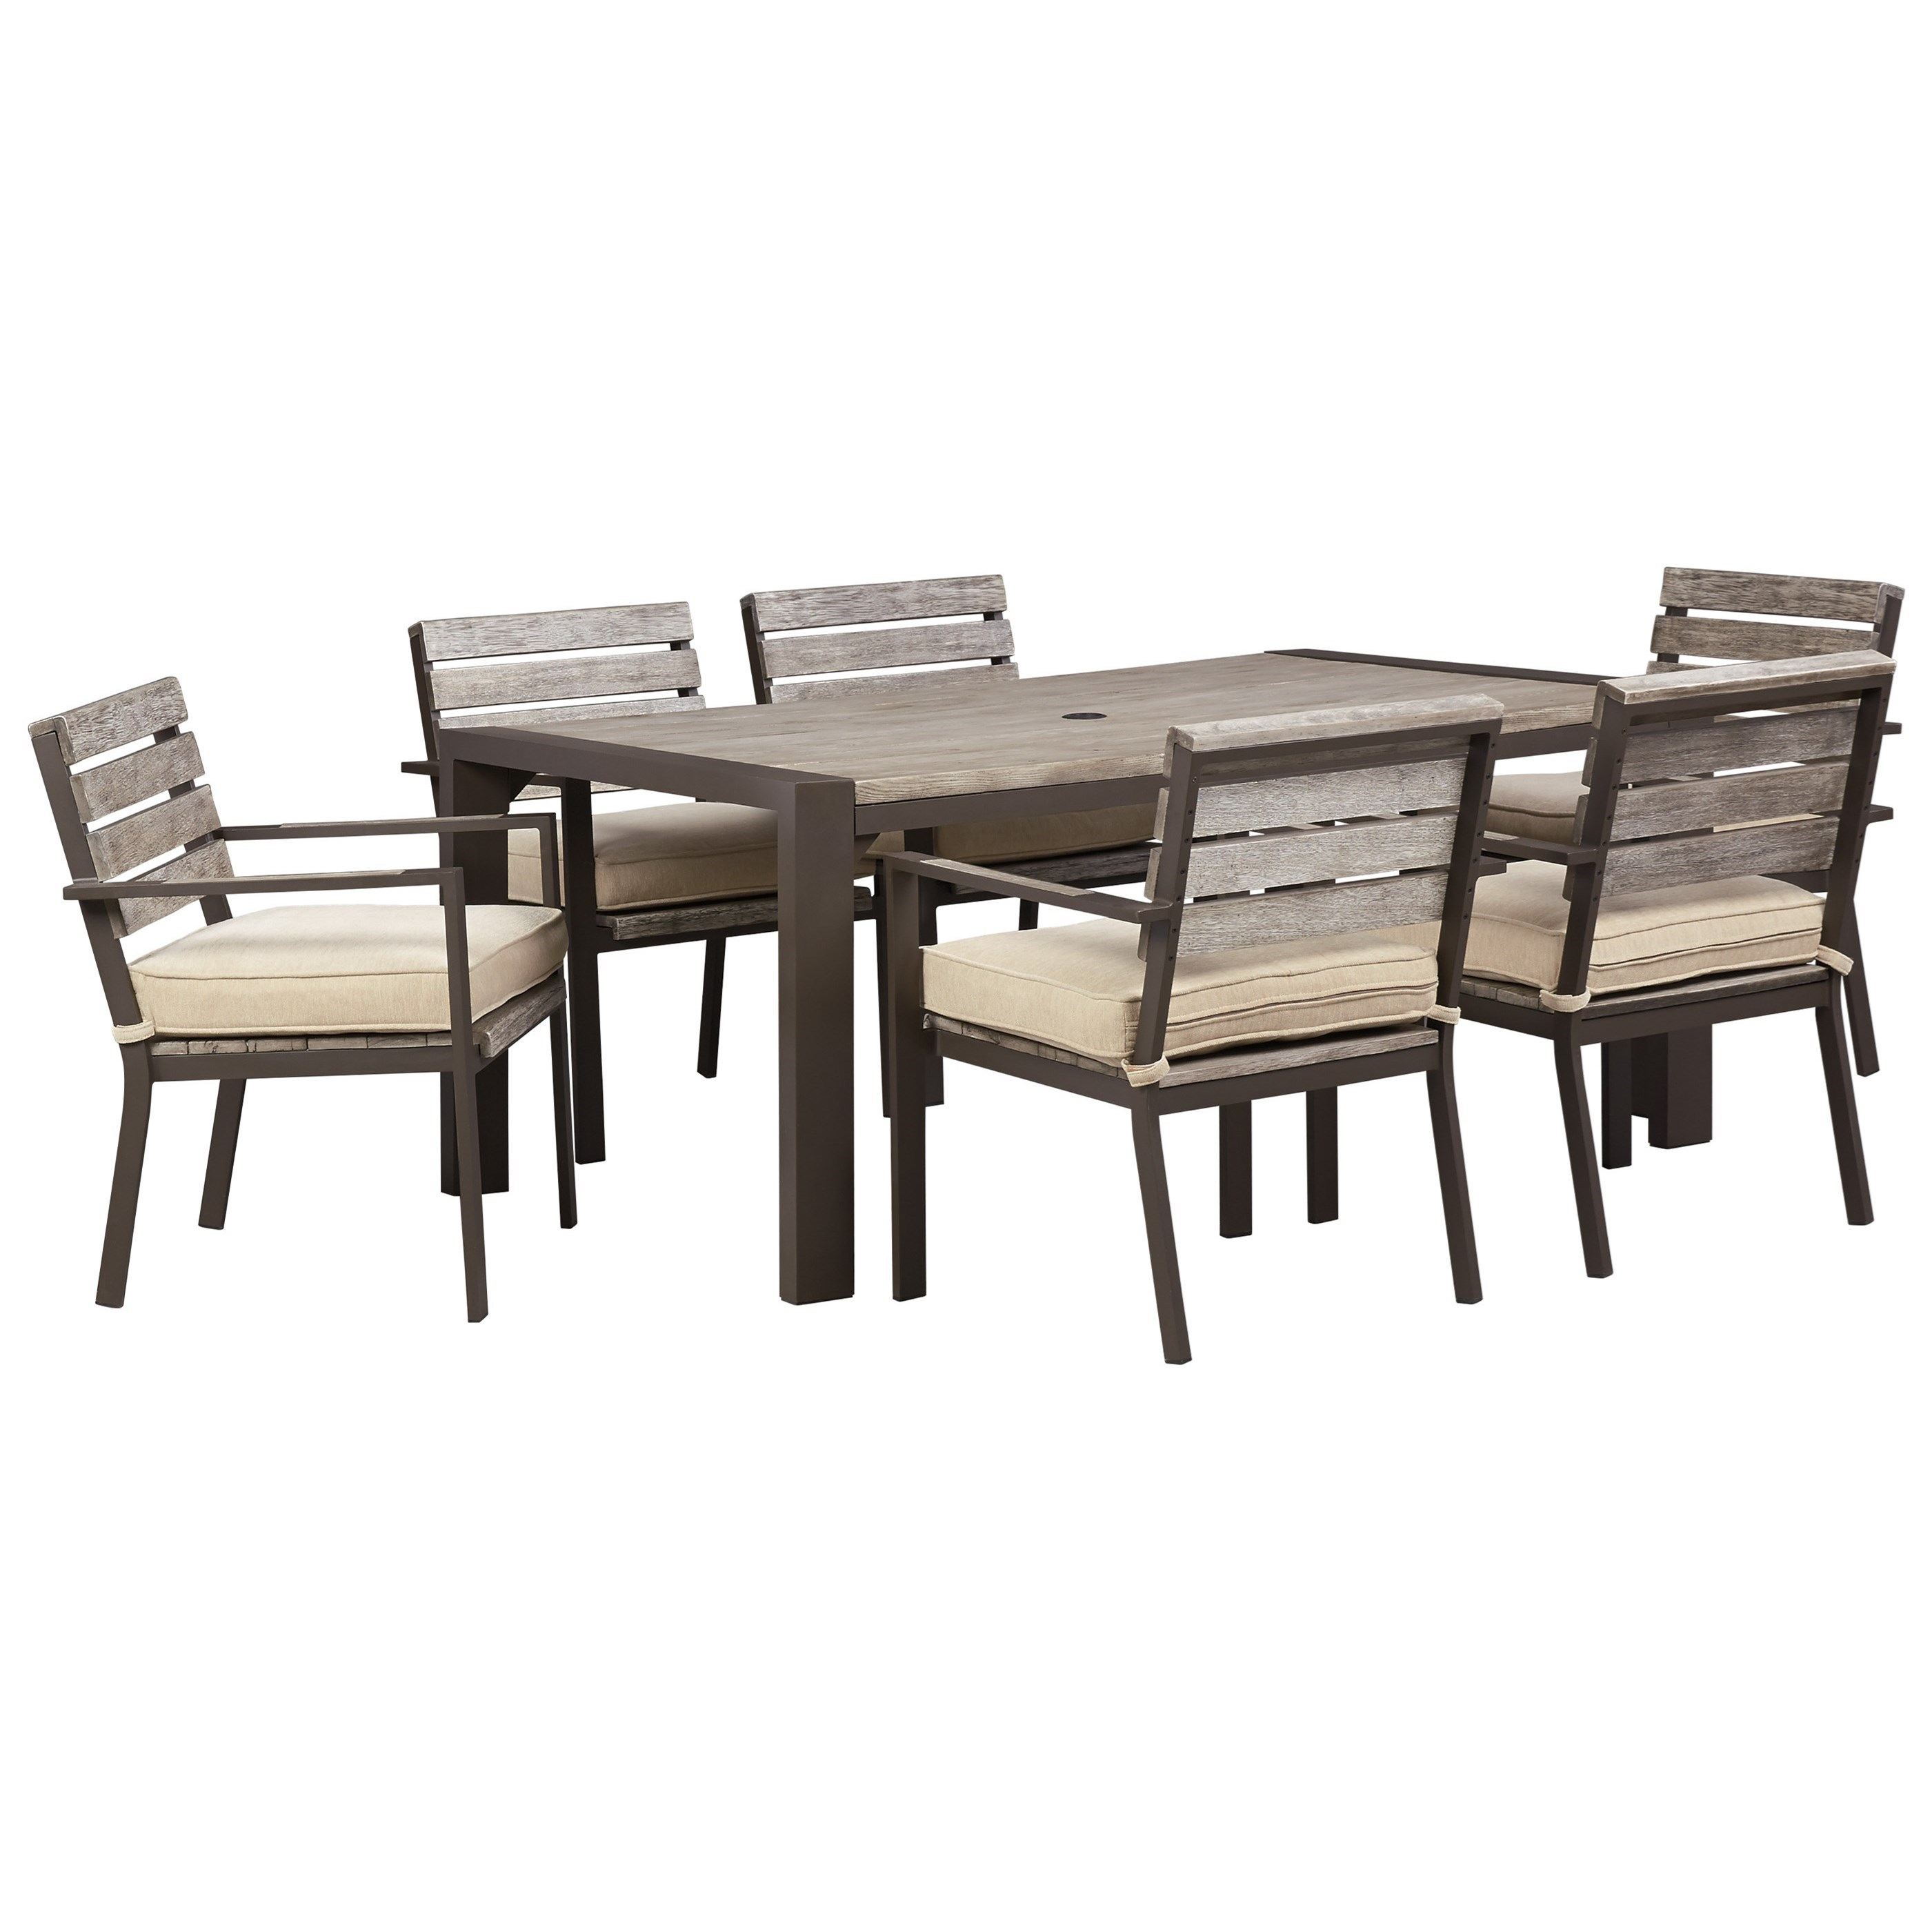 Signature Design By Ashley Peachstone Outdoor Dining Table Set Value City Furniture Outdoor